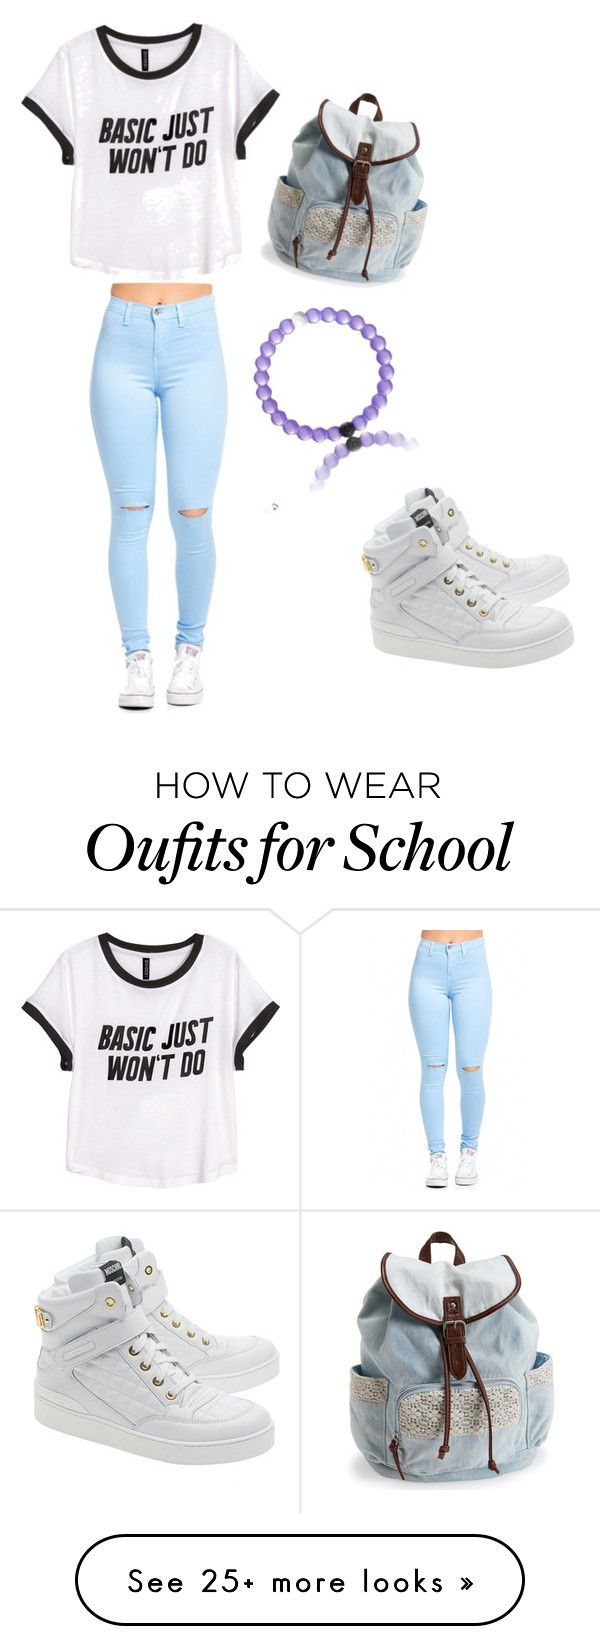 """""""My school style"""" by babyrachel350 on Polyvore featuring H&M, Aéropostale, Moschino, women's clothing, women, female, woman, misses and juniors"""